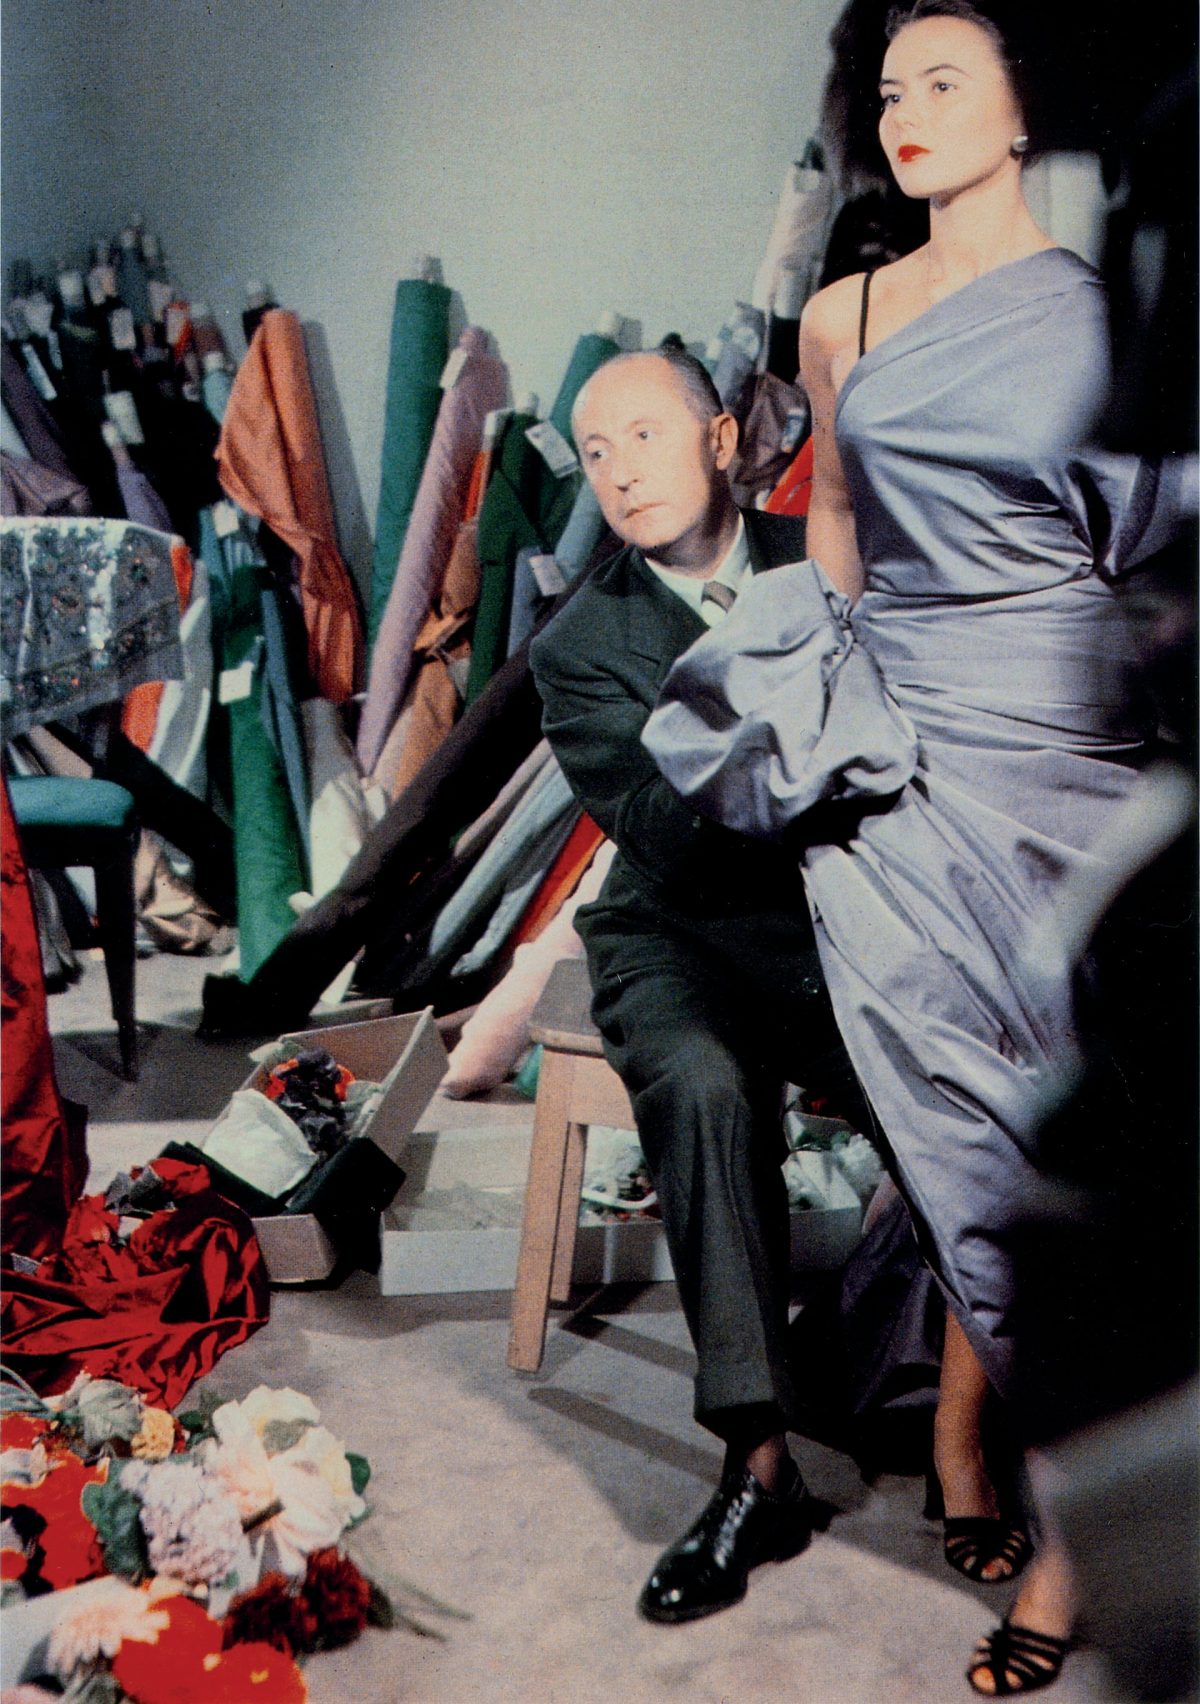 'A consummate professional'- Christian Dior with model Sylvie, c1948. Photograph- Christian Dior